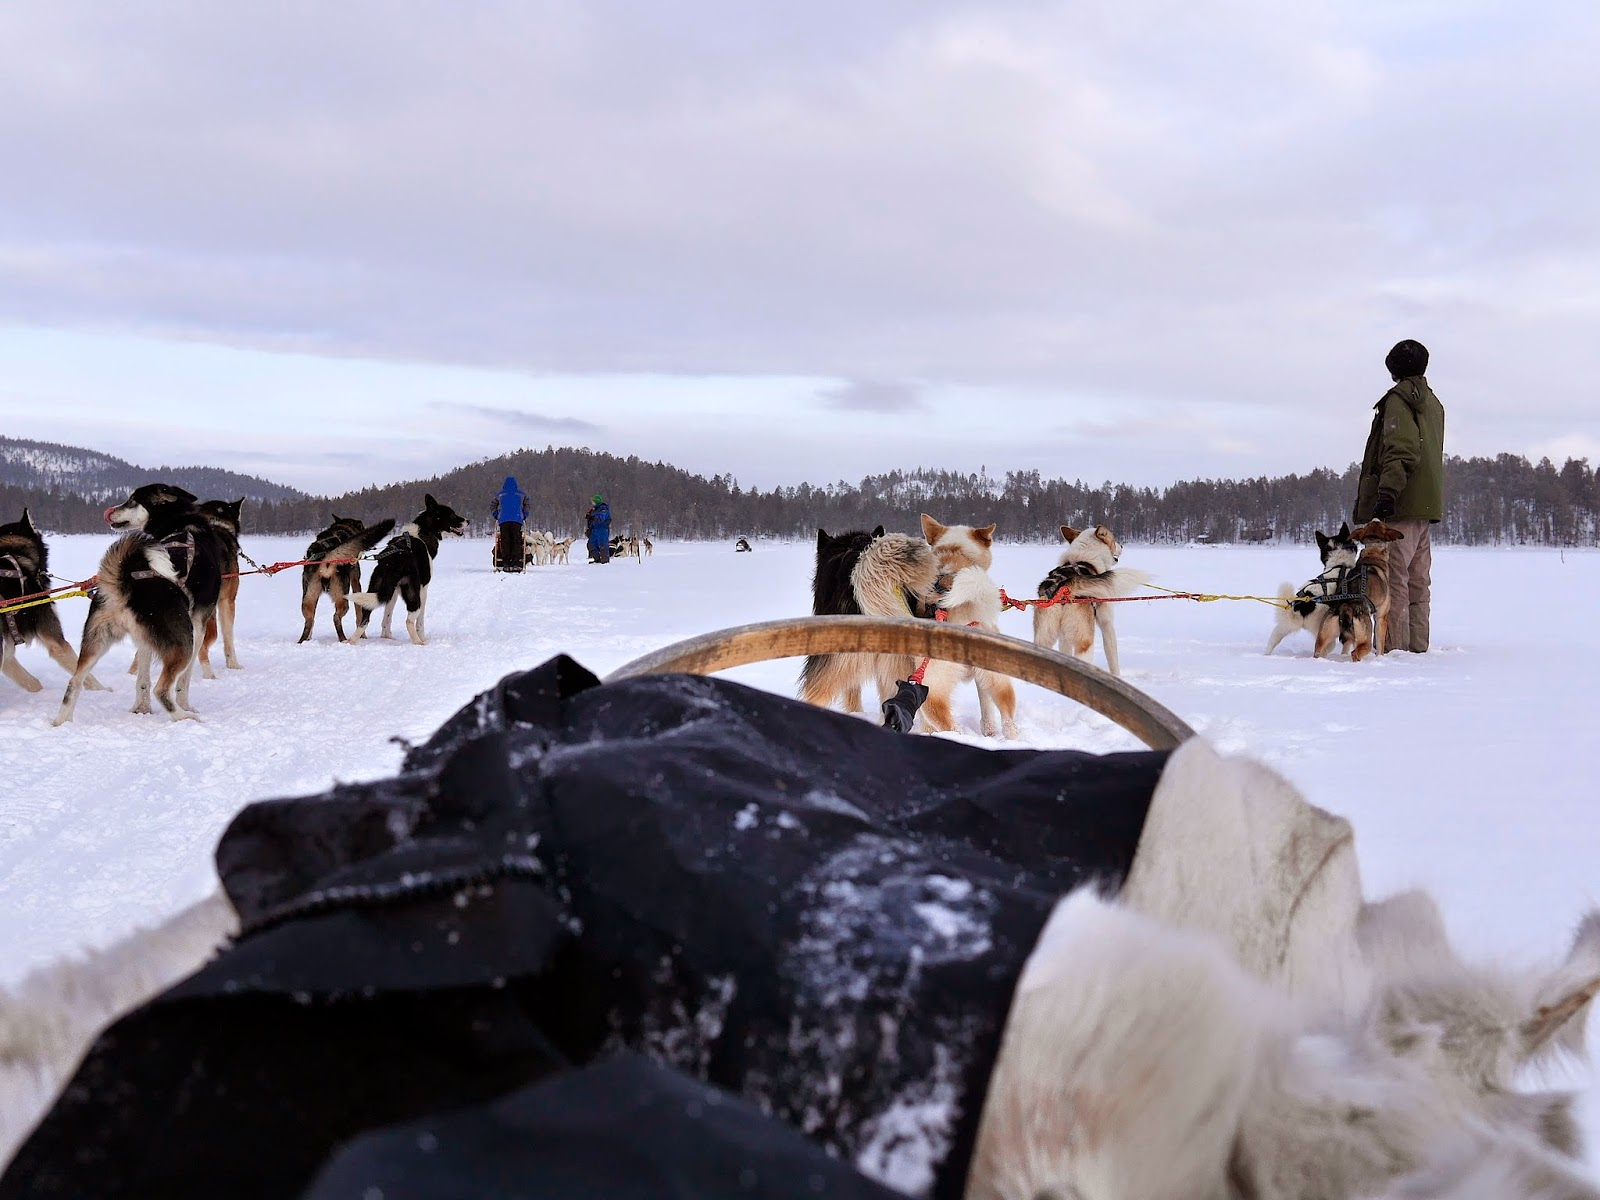 Husky Dog Sledding in the Finnish Lapland